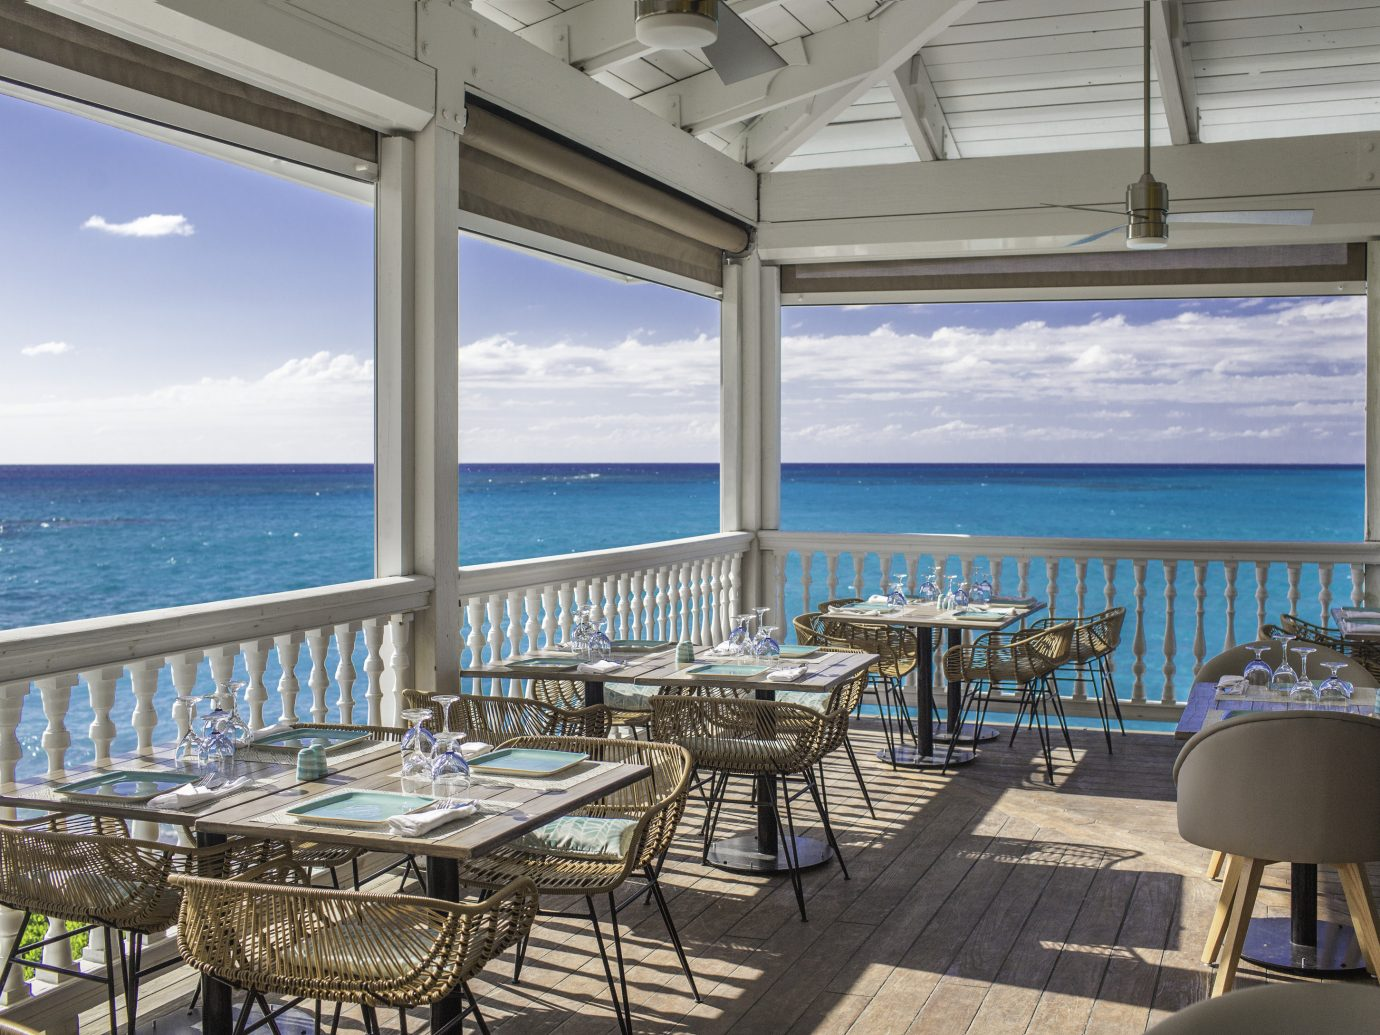 Outdoor dining at Club Med Columbus Isle